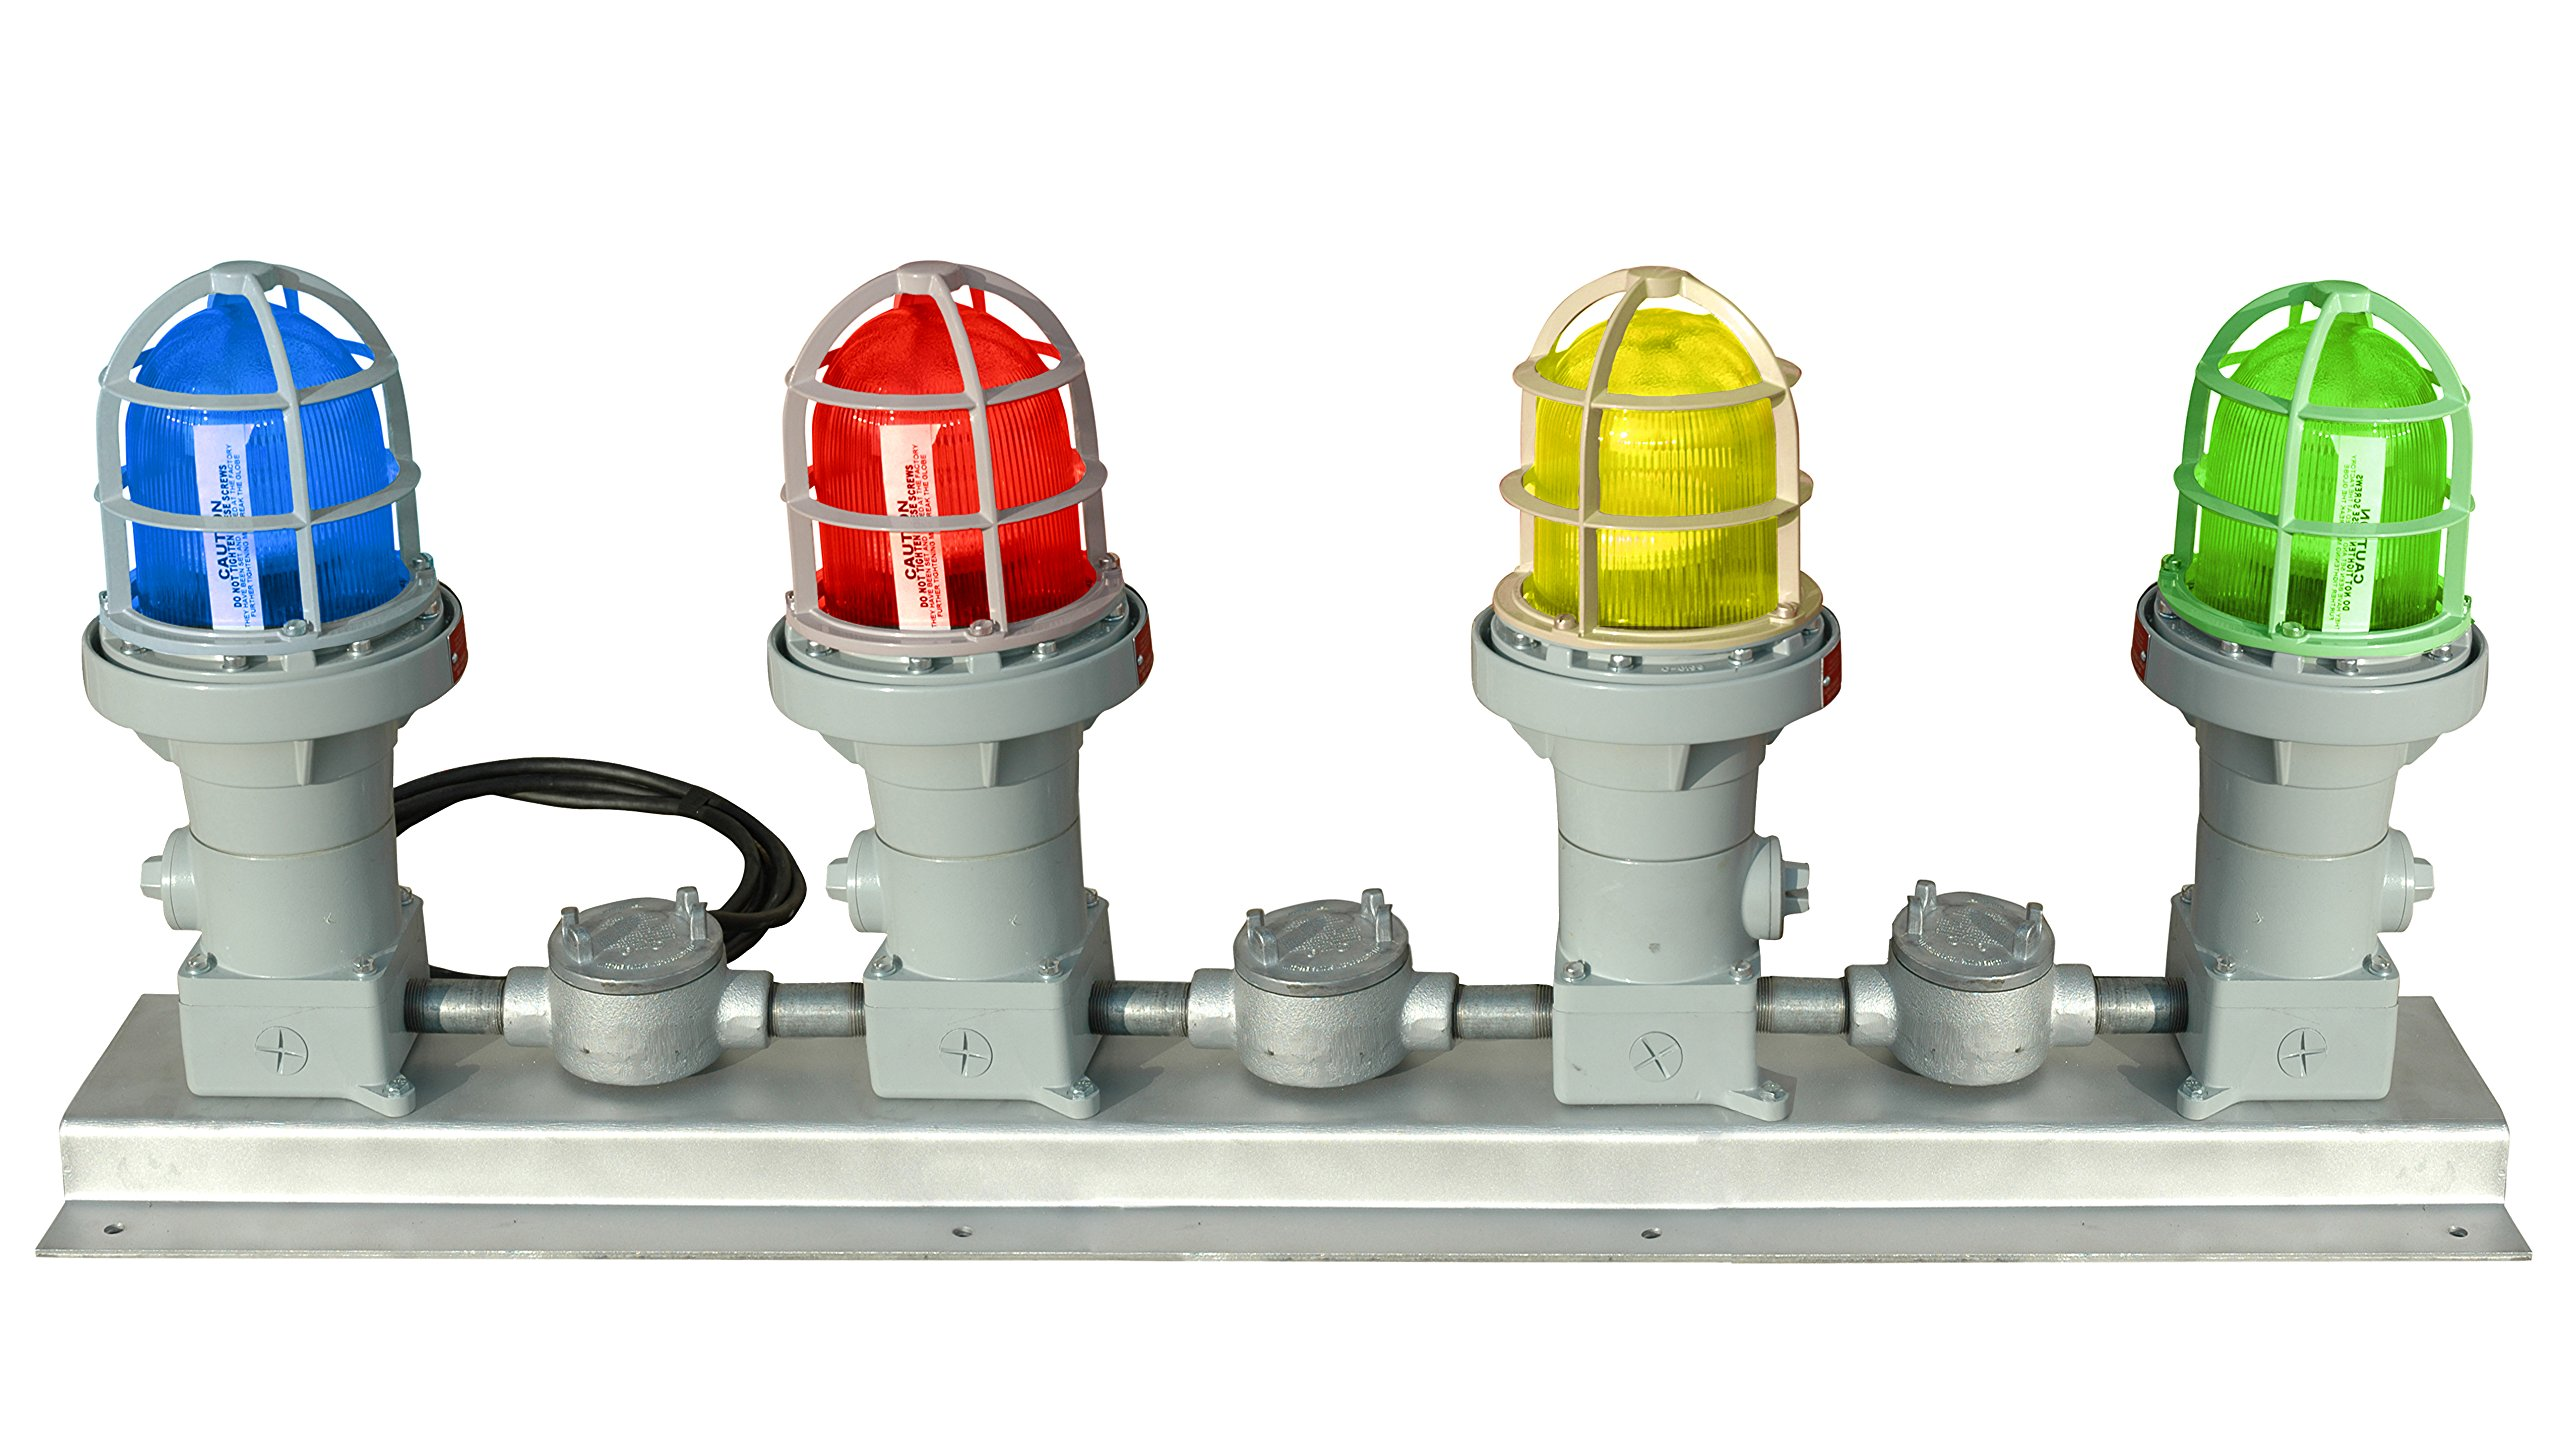 Explosion Proof Traffic Light - Class 1 & Class 2 Signal Stack Light - Colored Lamps